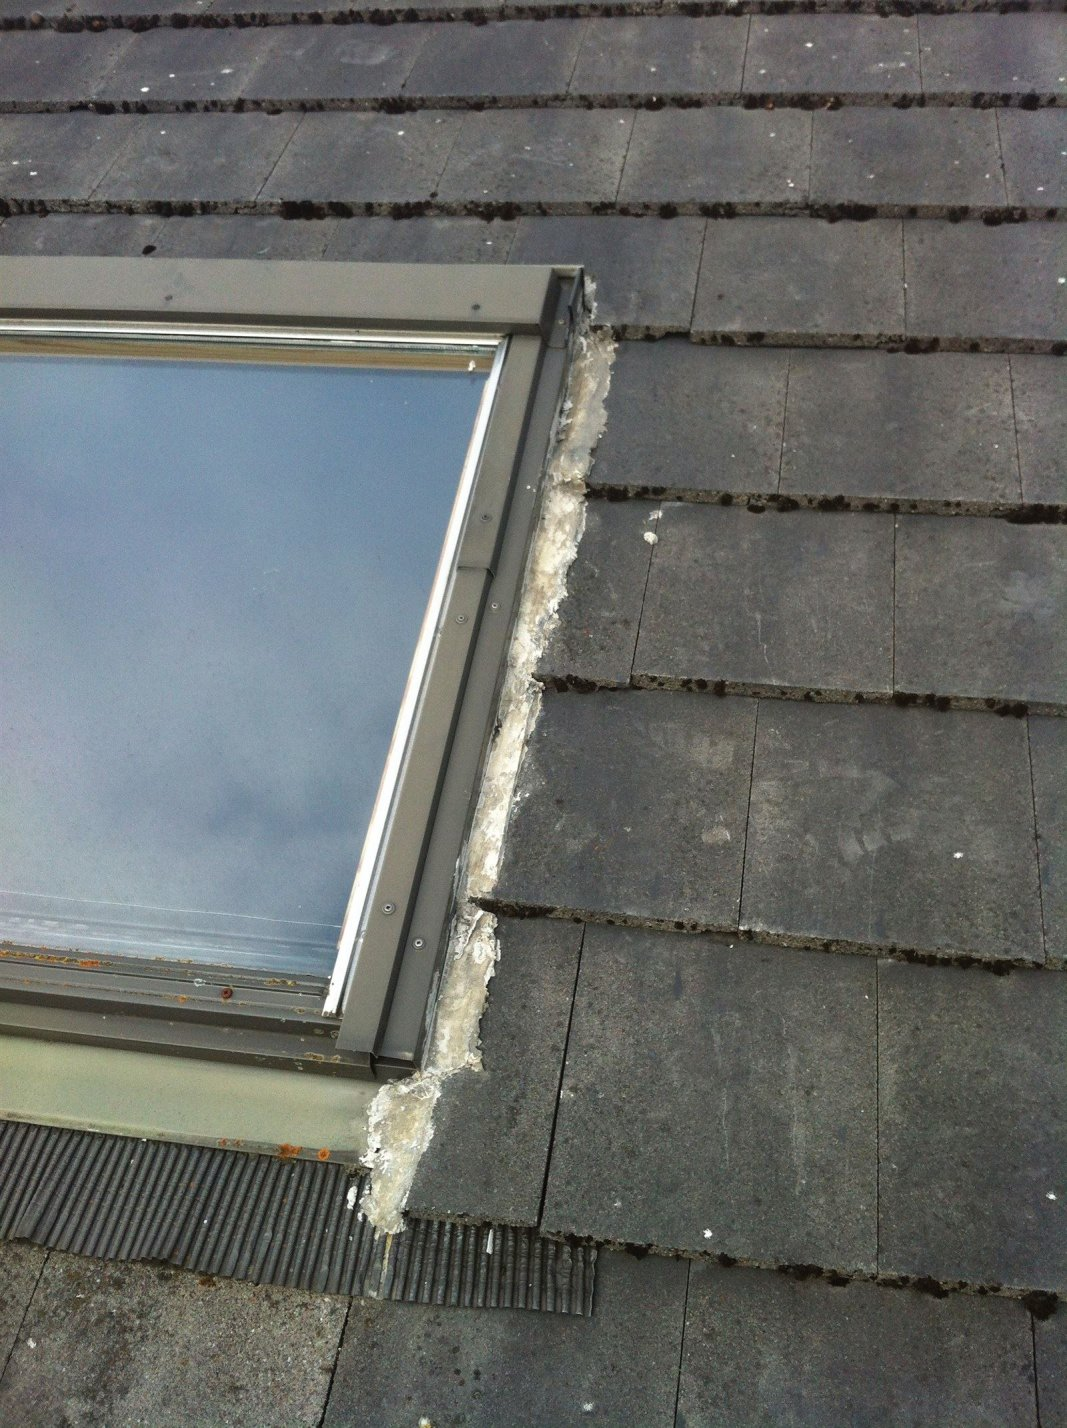 Velux windows come with a flashing that is designed to keep rain and snow out safely. Blocking these with mortar will only lead to further problems.